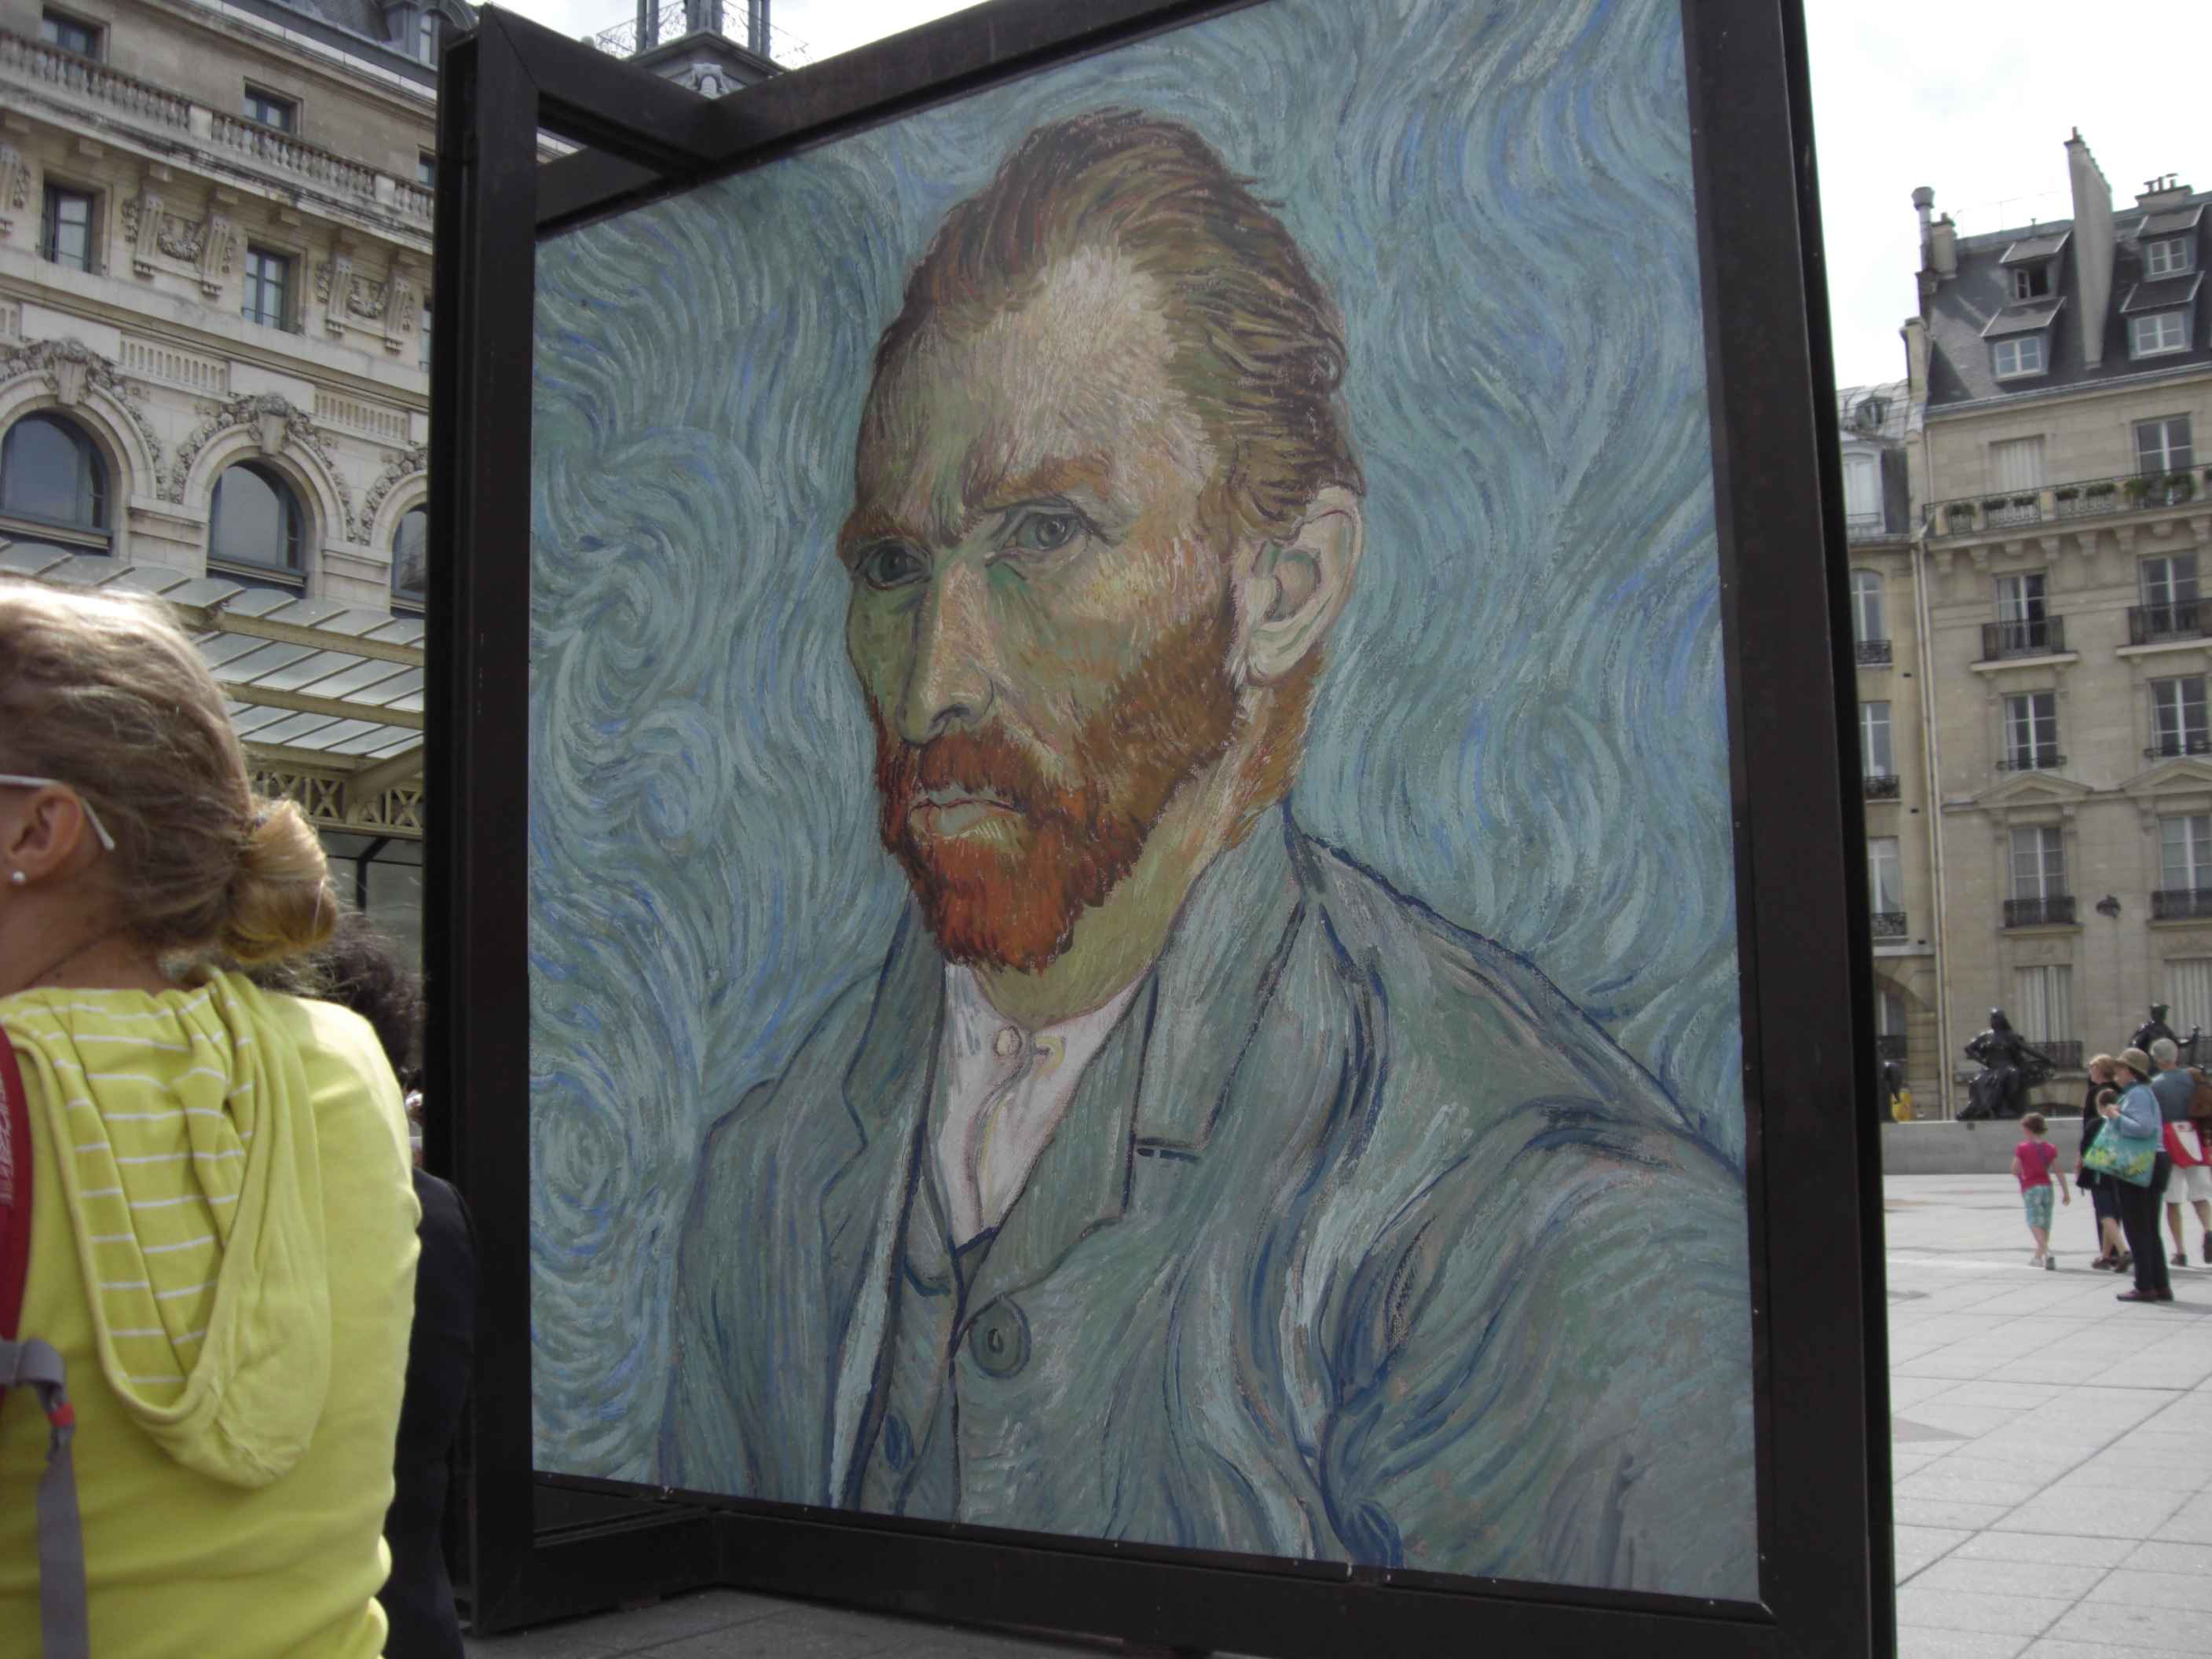 a tour of museums musee d orsay and musee de l orangerie a photo vincent van gogh greeted tourists and art enthusiasts at the entrance 2009